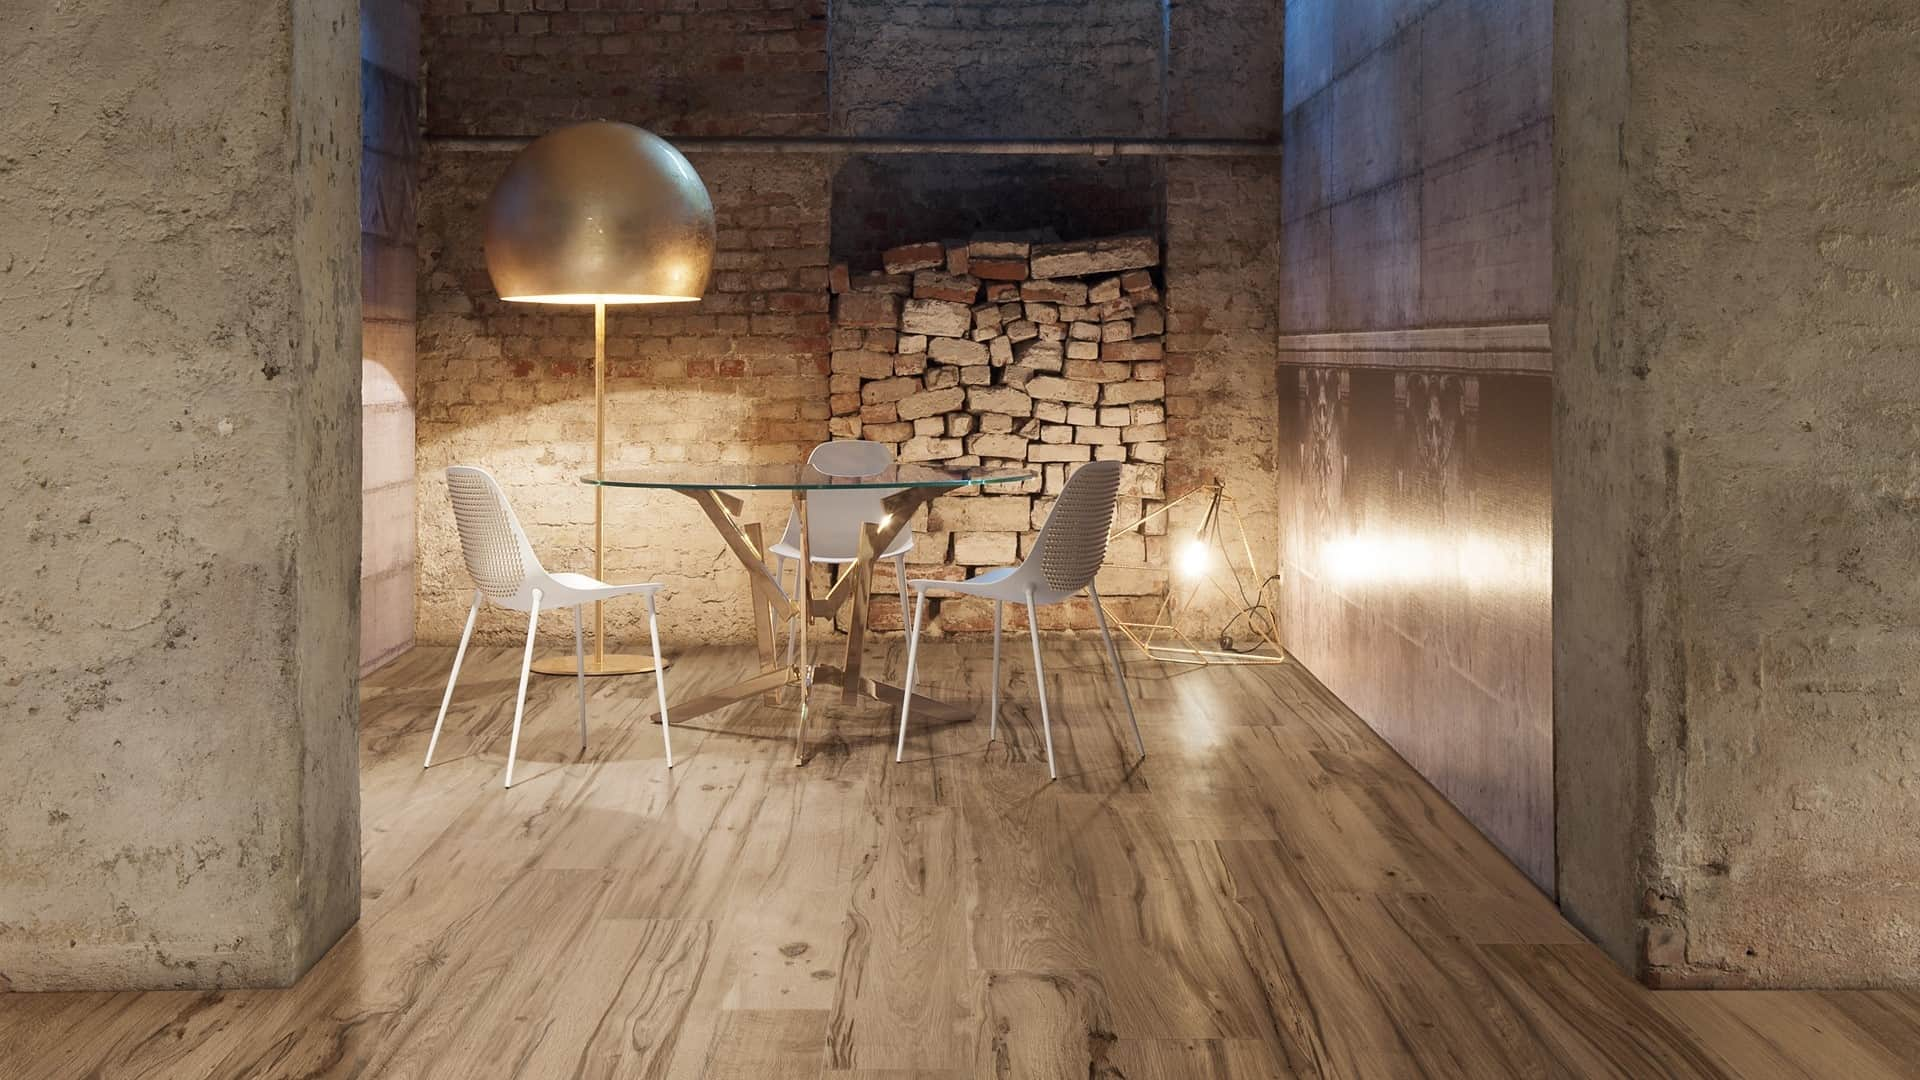 Design Modern Tile Floors wood effect tiles for floors and walls 30 nicest porcelain rustic layer in perfectly with the brick concrete steel used this modern dining room